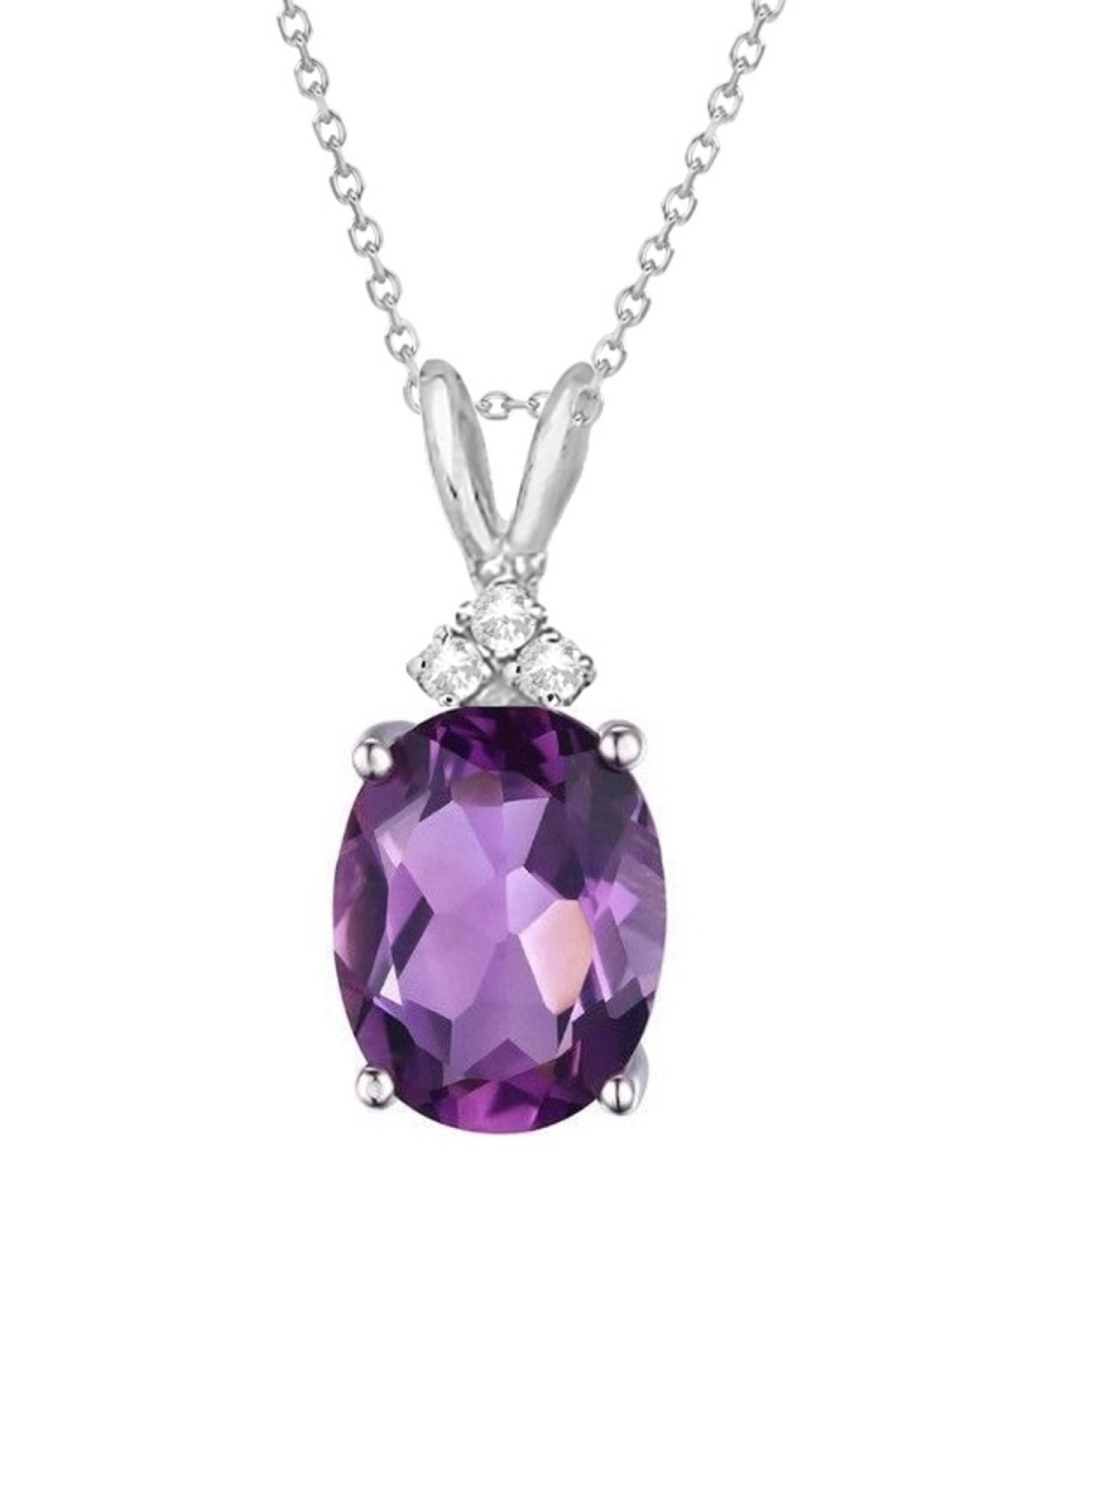 Genuine 1.00 Carat Natural 7x5mm Oval Shaped Amethyst with White Topaz Necklace In 925 Sterling Silver